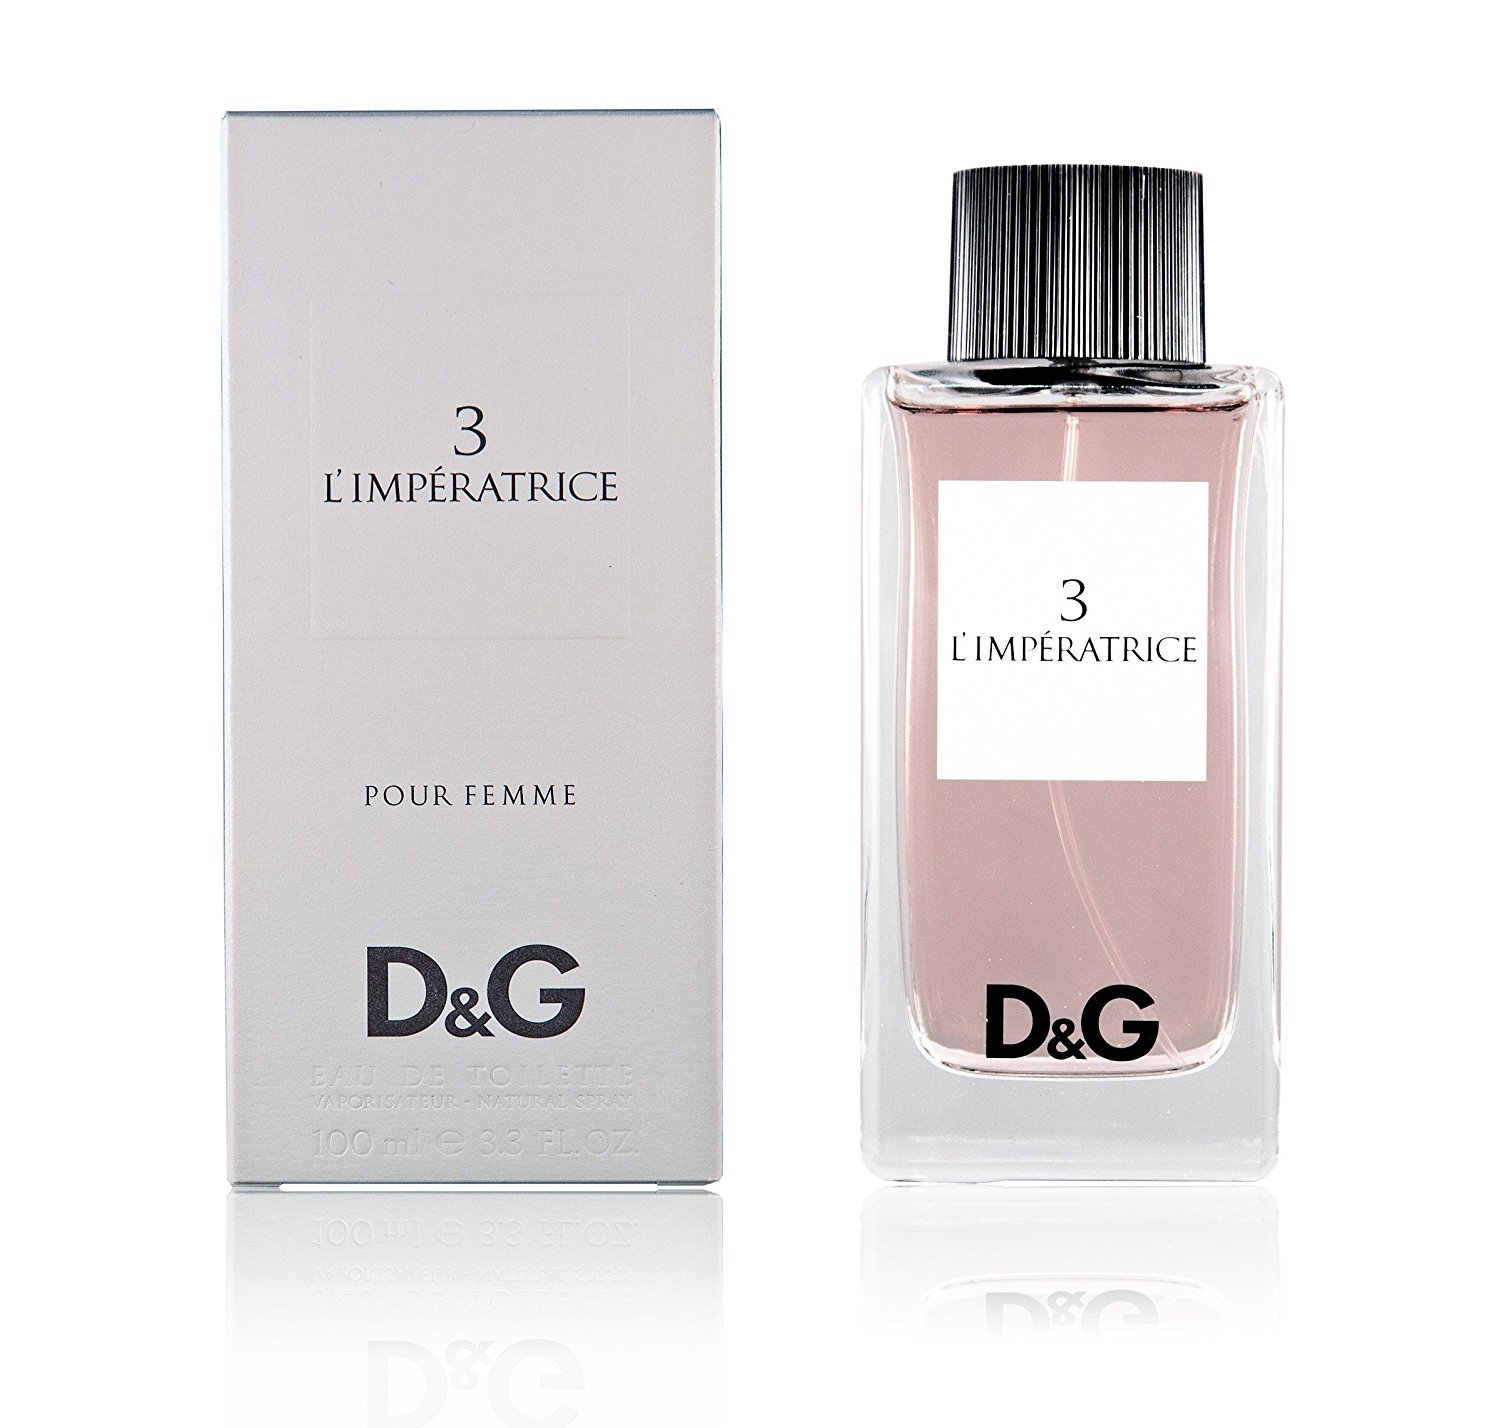 Dolce and Gabbana D & G No 3 Limperatrice EDT Perfume 100ml Pour Femme